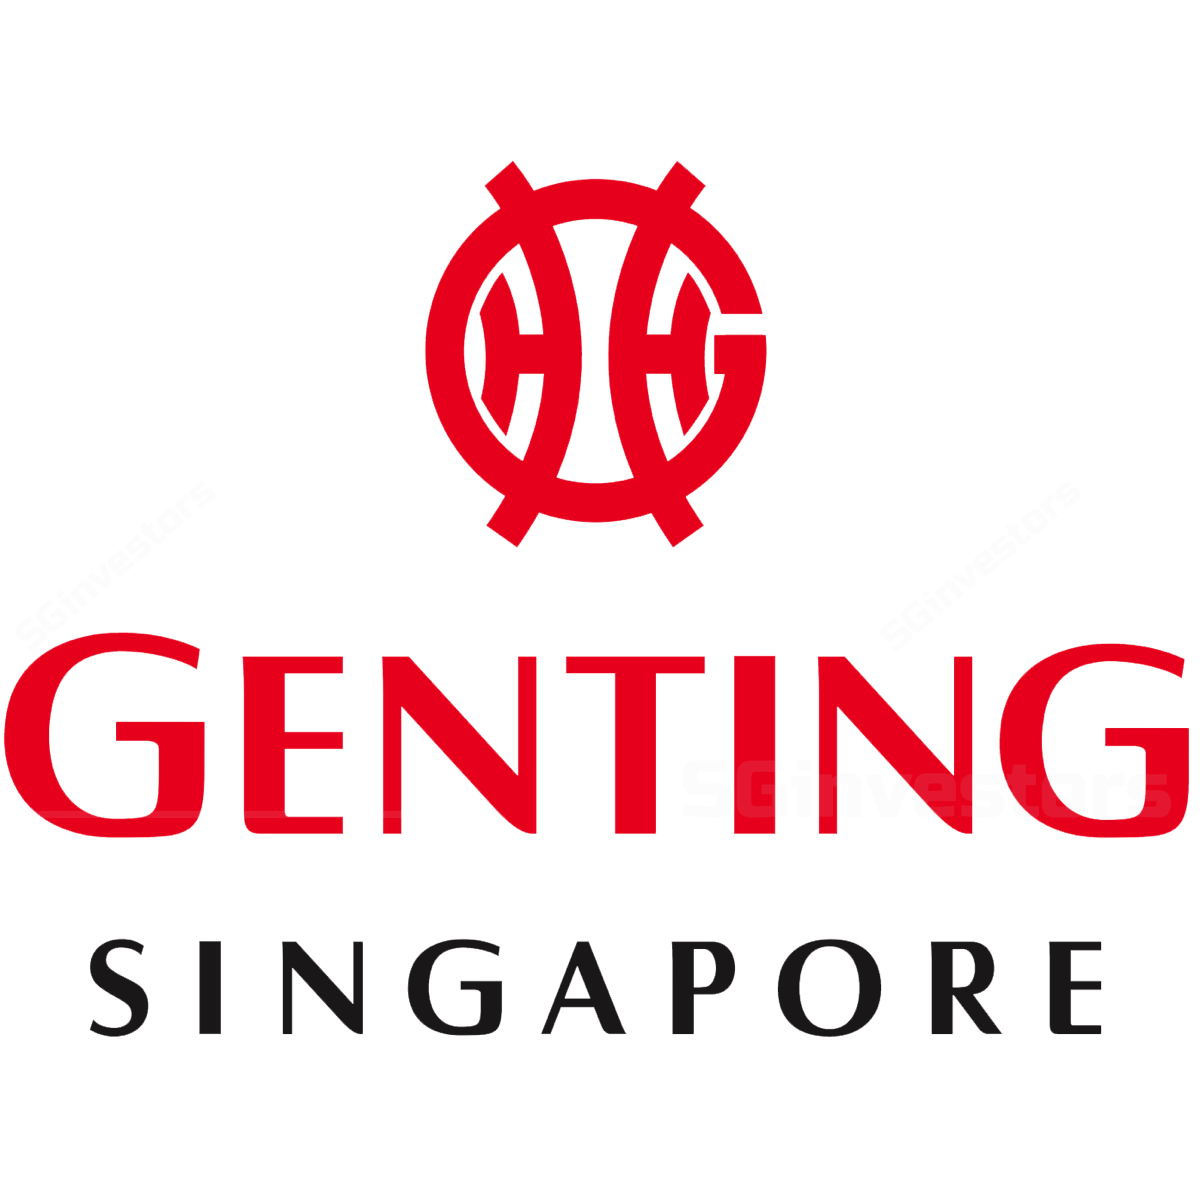 Genting Singapore - OCBC Investment 2017-11-07: 2018 Prospects Continue To Look Robust